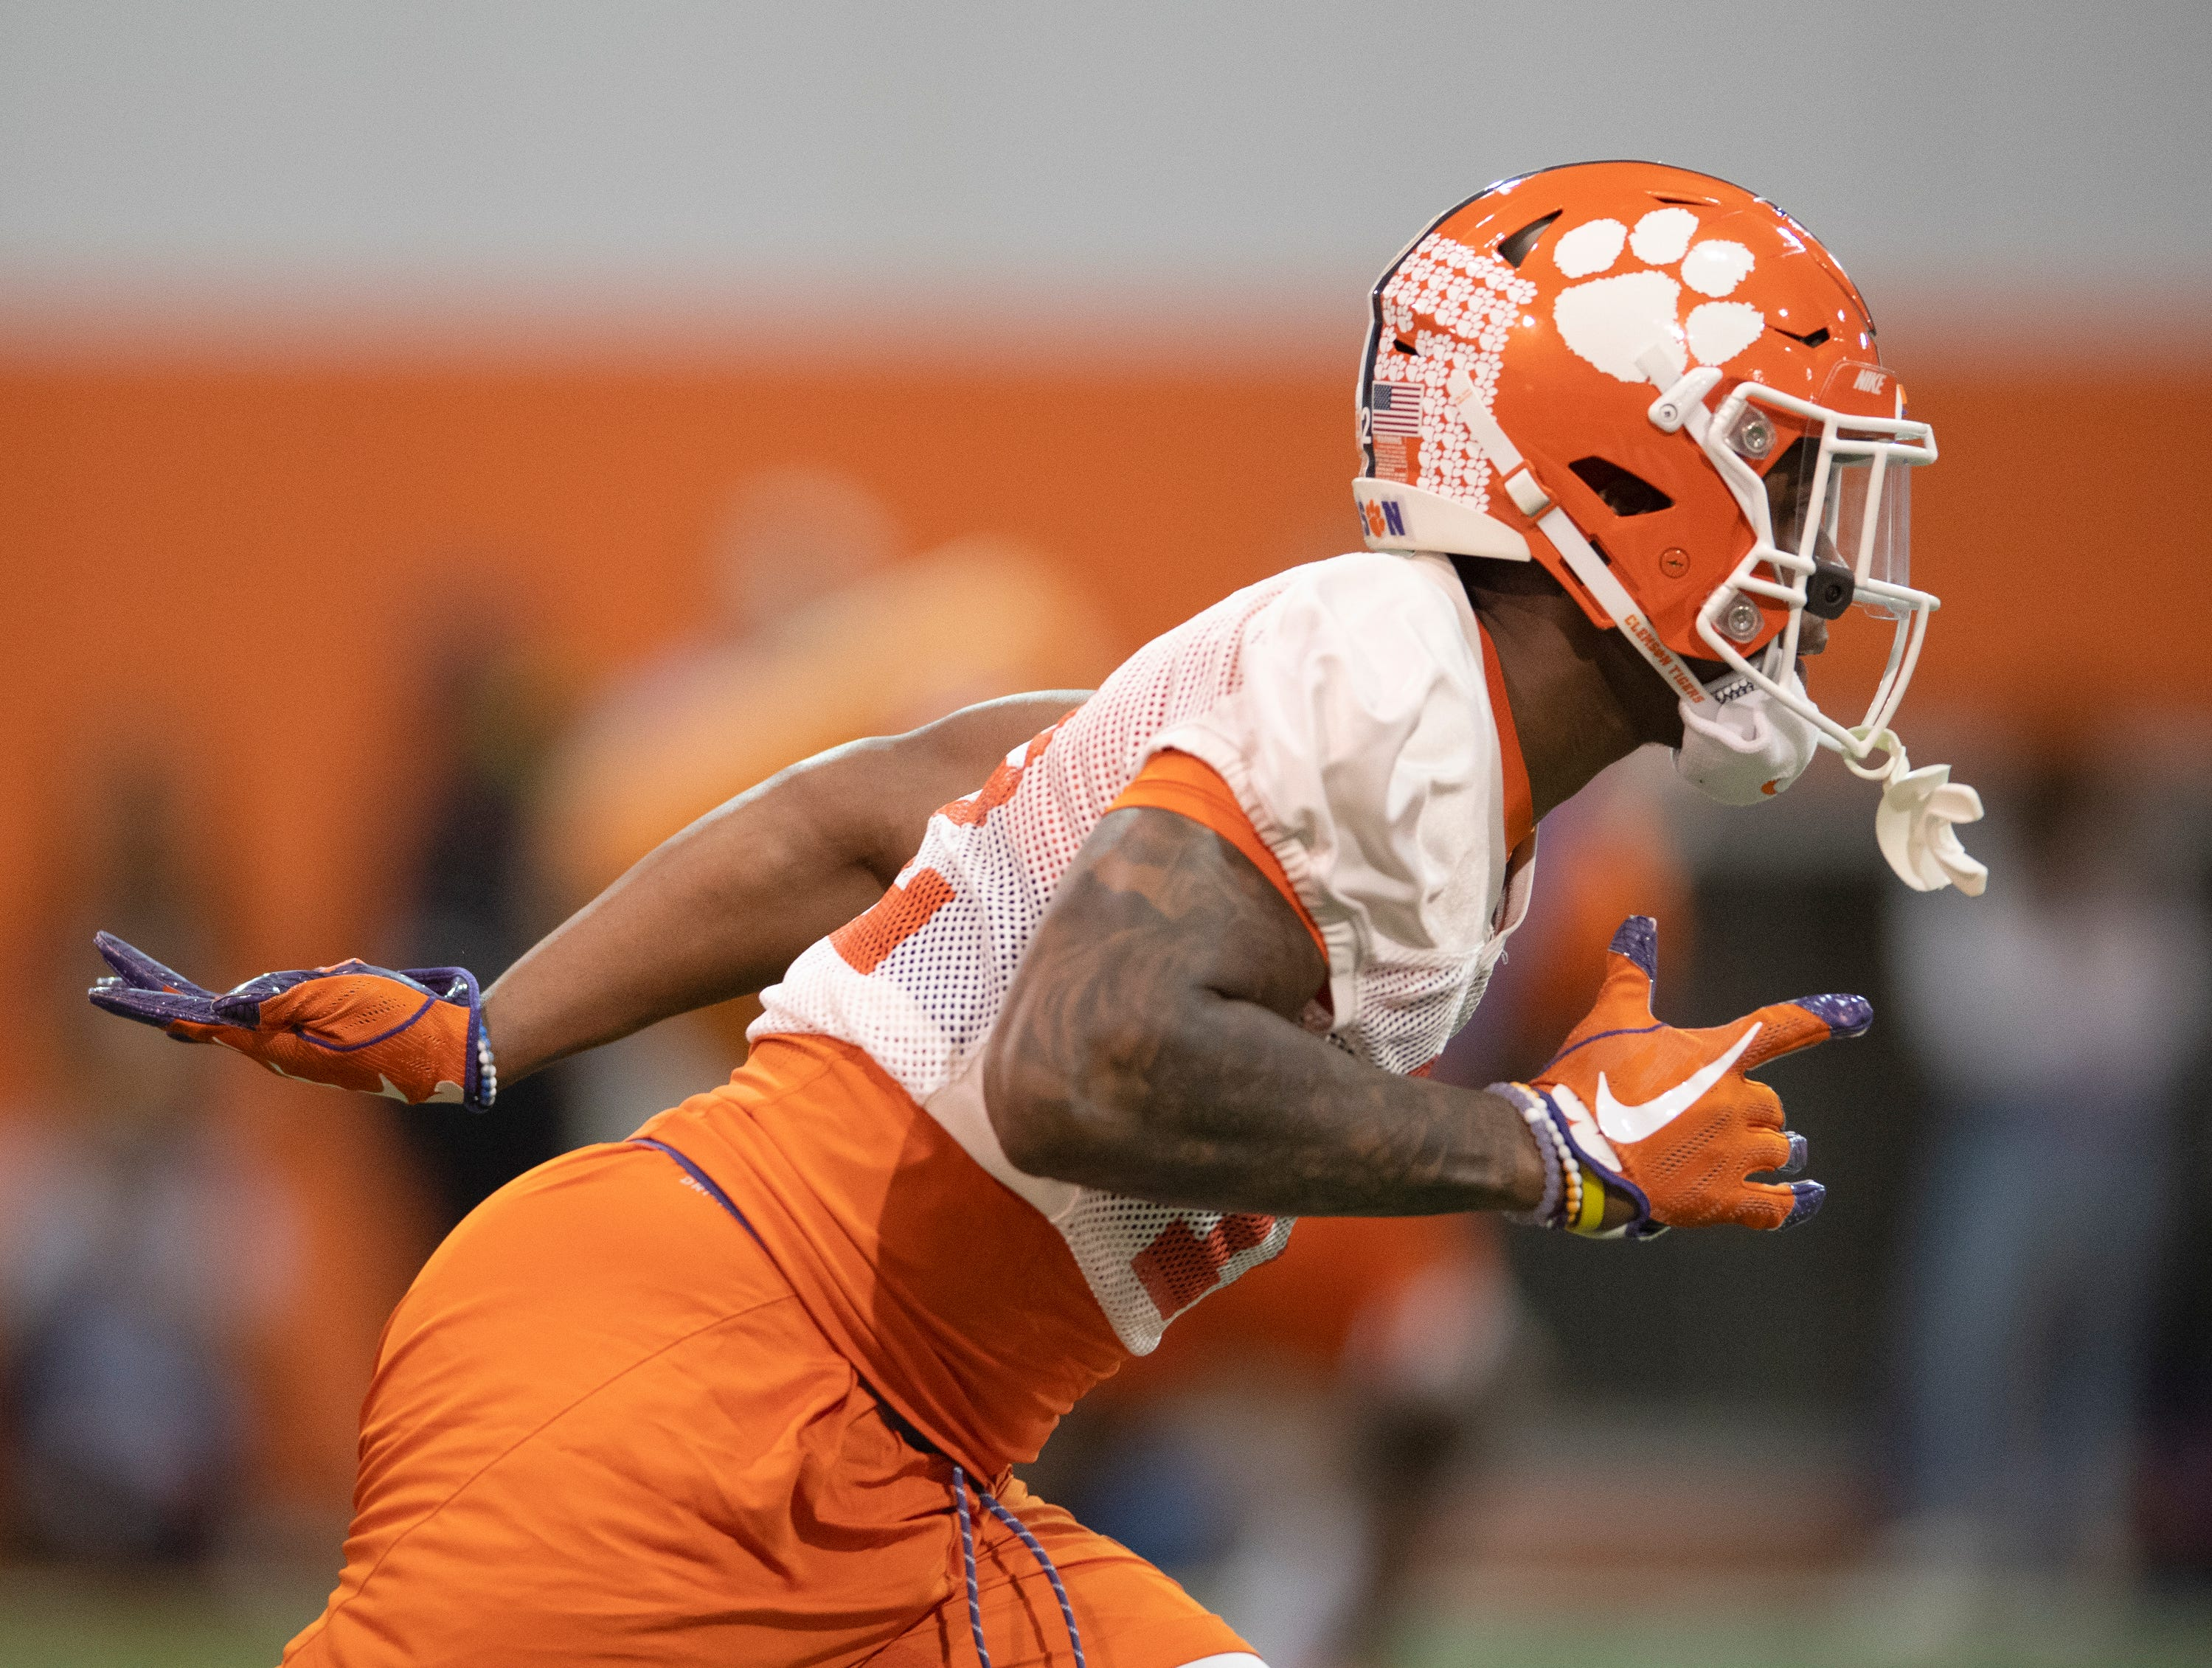 Clemson's K'Von Wallace (12) goes through drills during football practice at the Poe Indoor Football Facility Friday, Mar. 1, 2019.